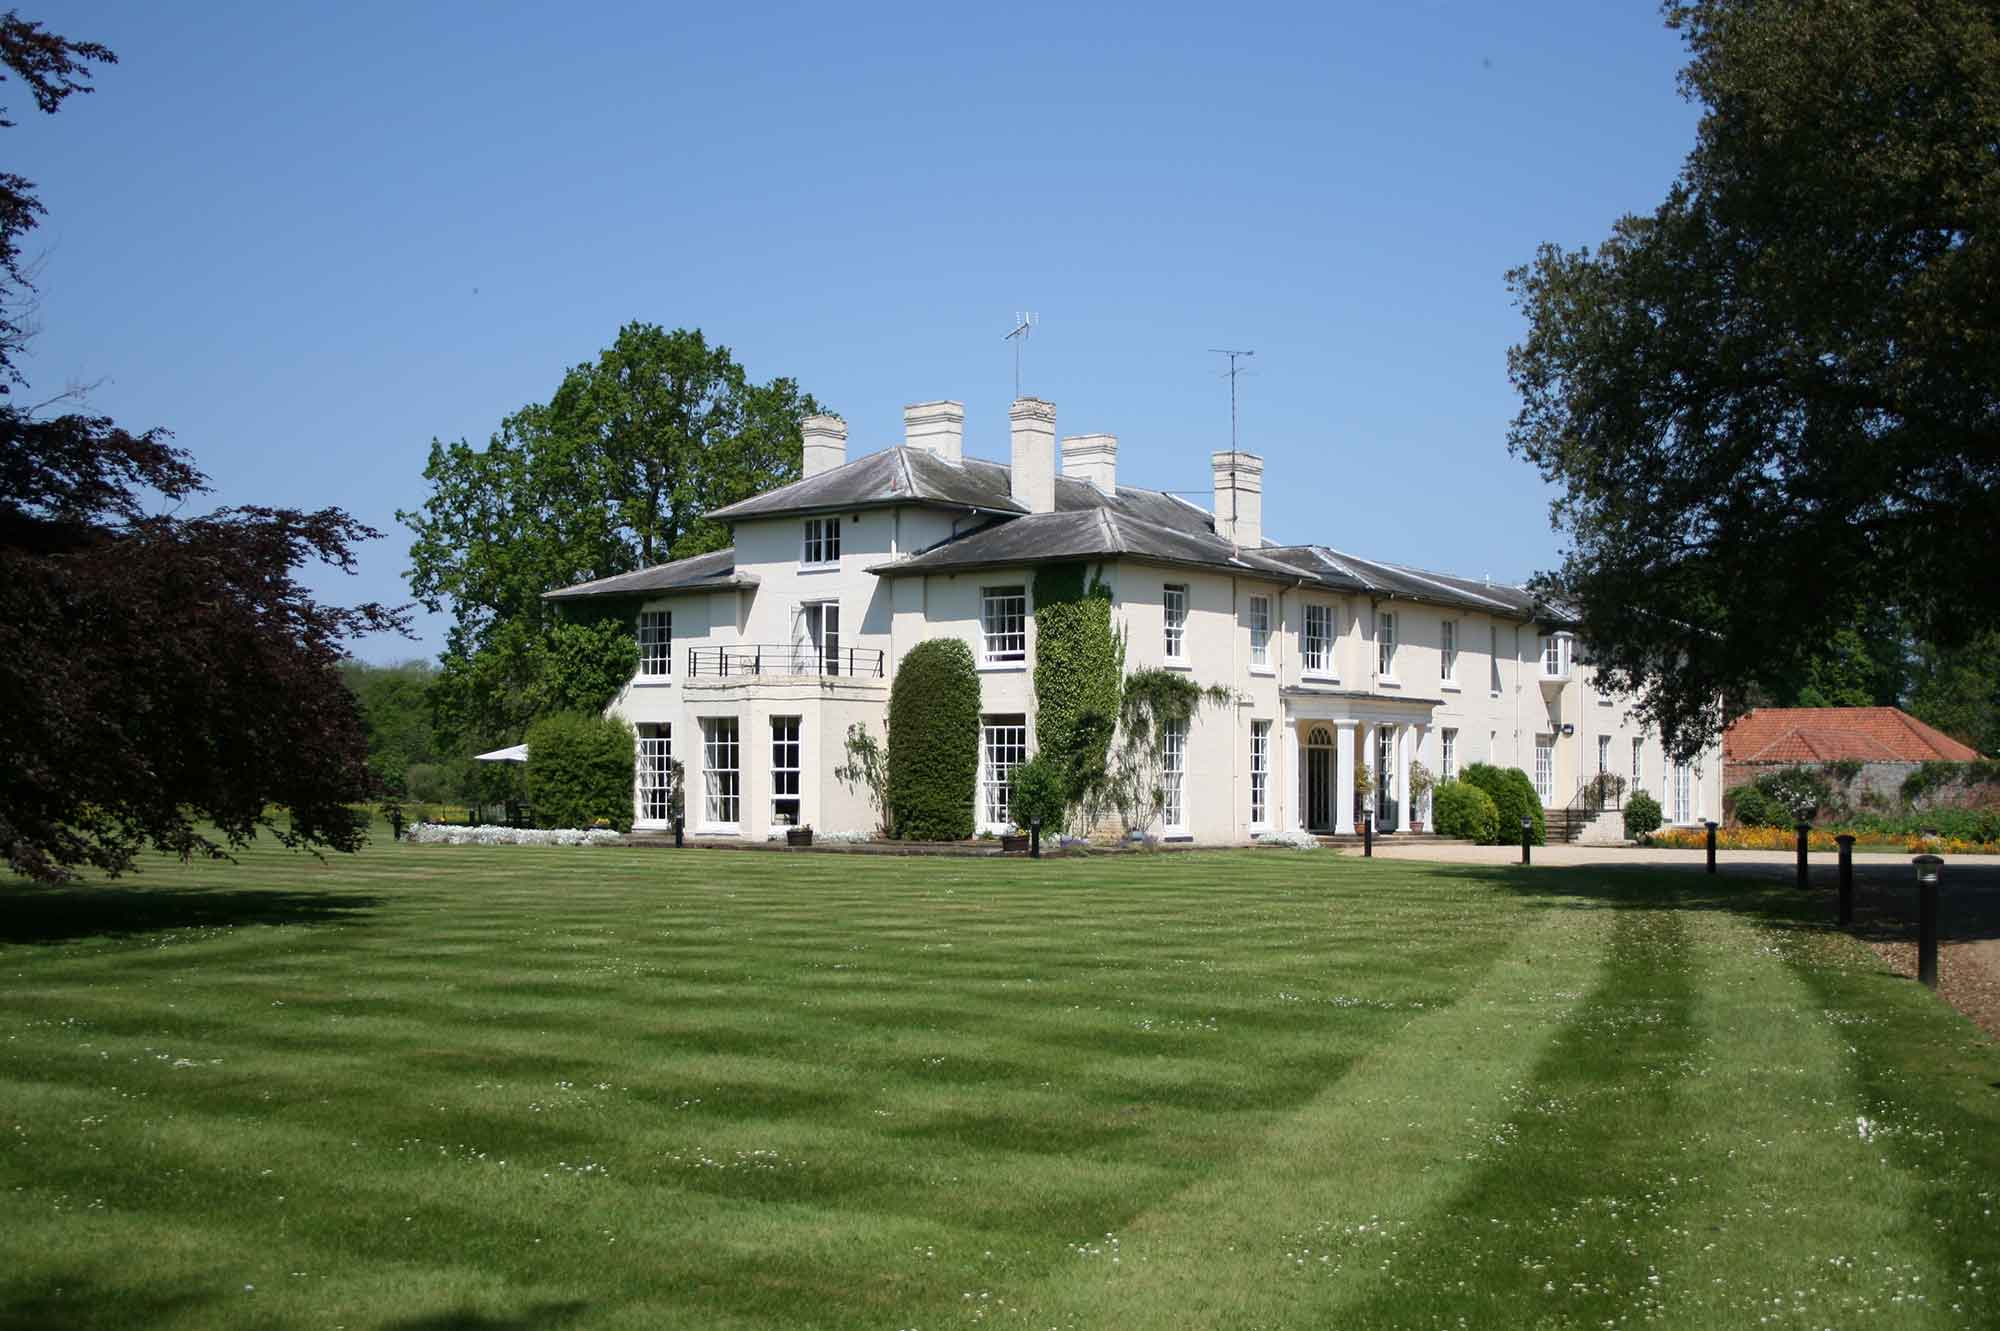 Congham Hall Hotel gets the green light for mammoth new expansion project